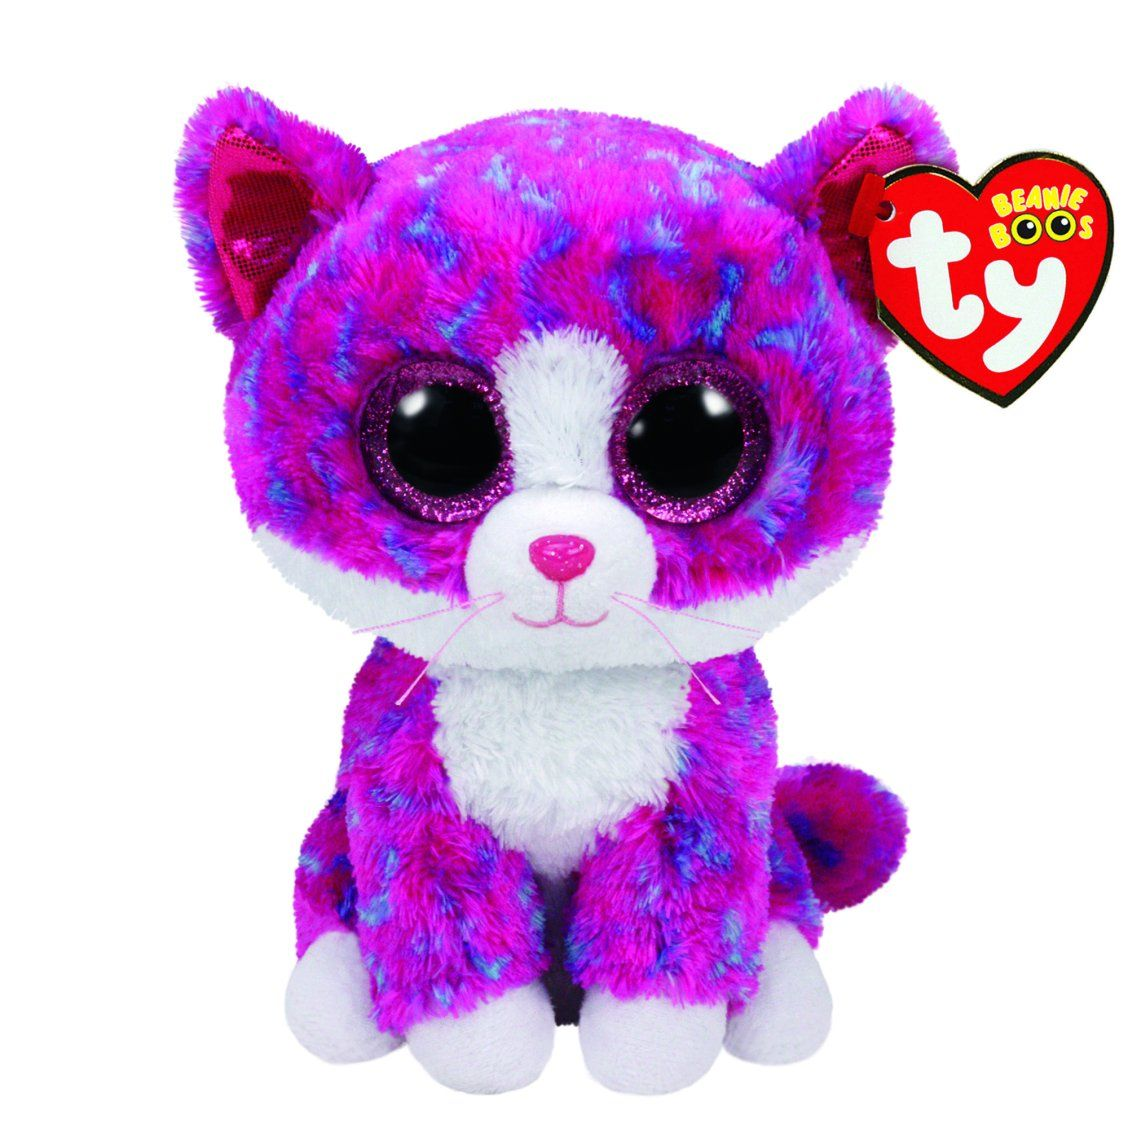 7fca92843c1 TY Beanie Boos Medium Charlotte The Cat Plush Toy